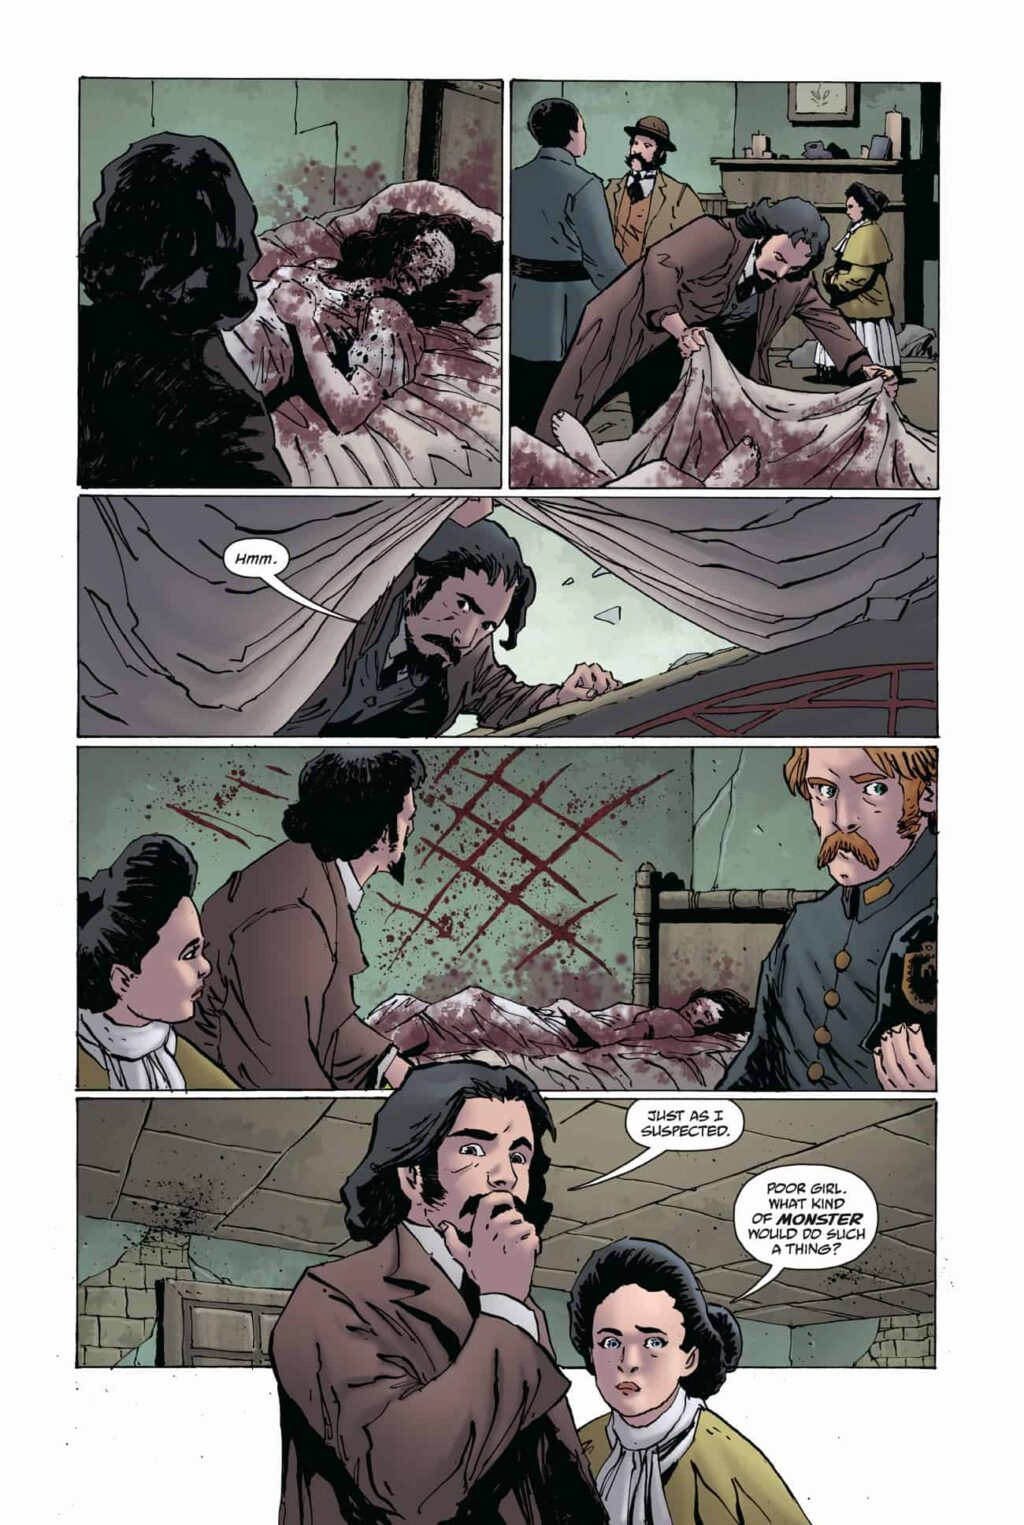 WFROD i1 PG 03 1024x1525 - Exclusive Preview: Jack the Ripper Haunts the Pages of WITCHFINDER: REIGN OF DARKNESS